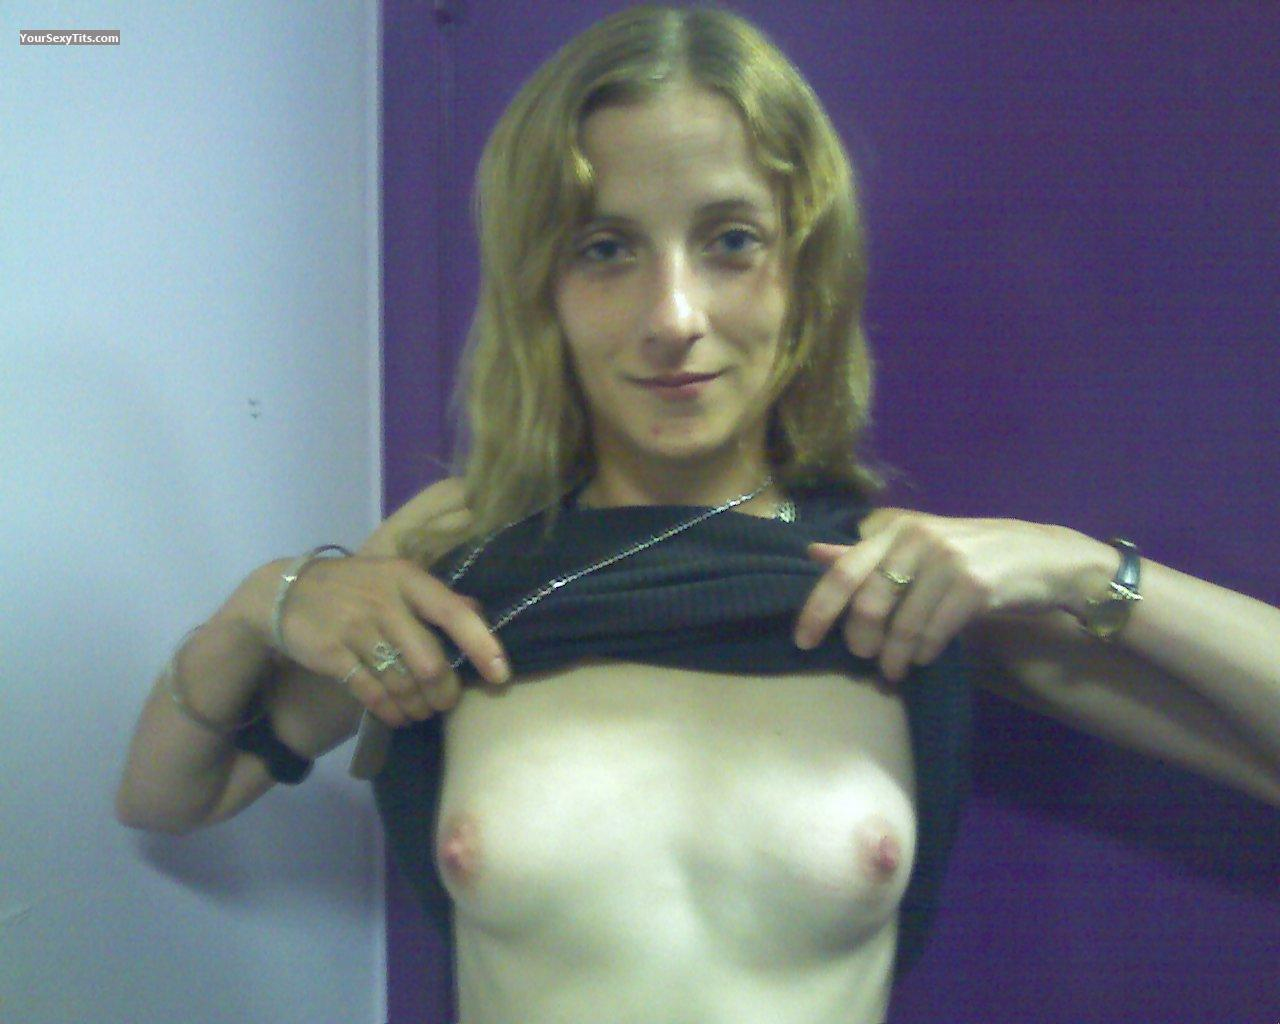 Tit Flash: Small Tits - Topless Toni from United States